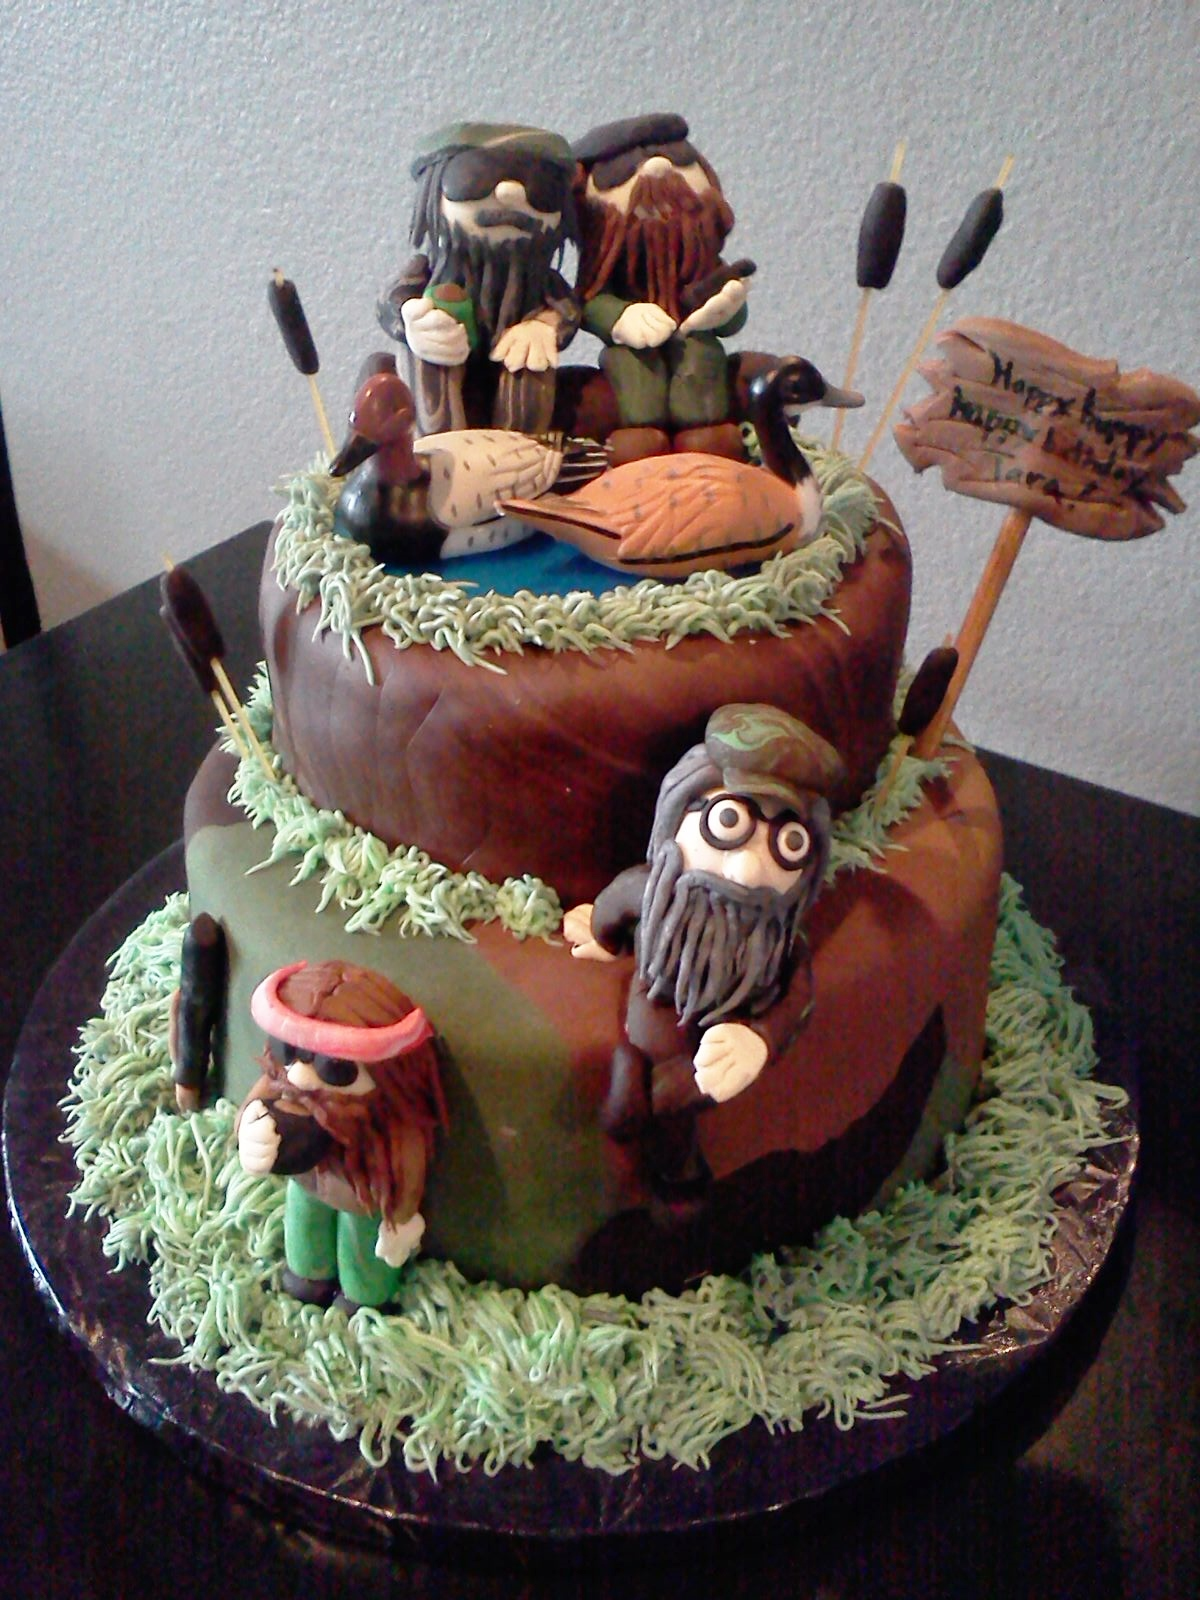 Duck Dynasty Happy Happy Happy Birthday Cake!